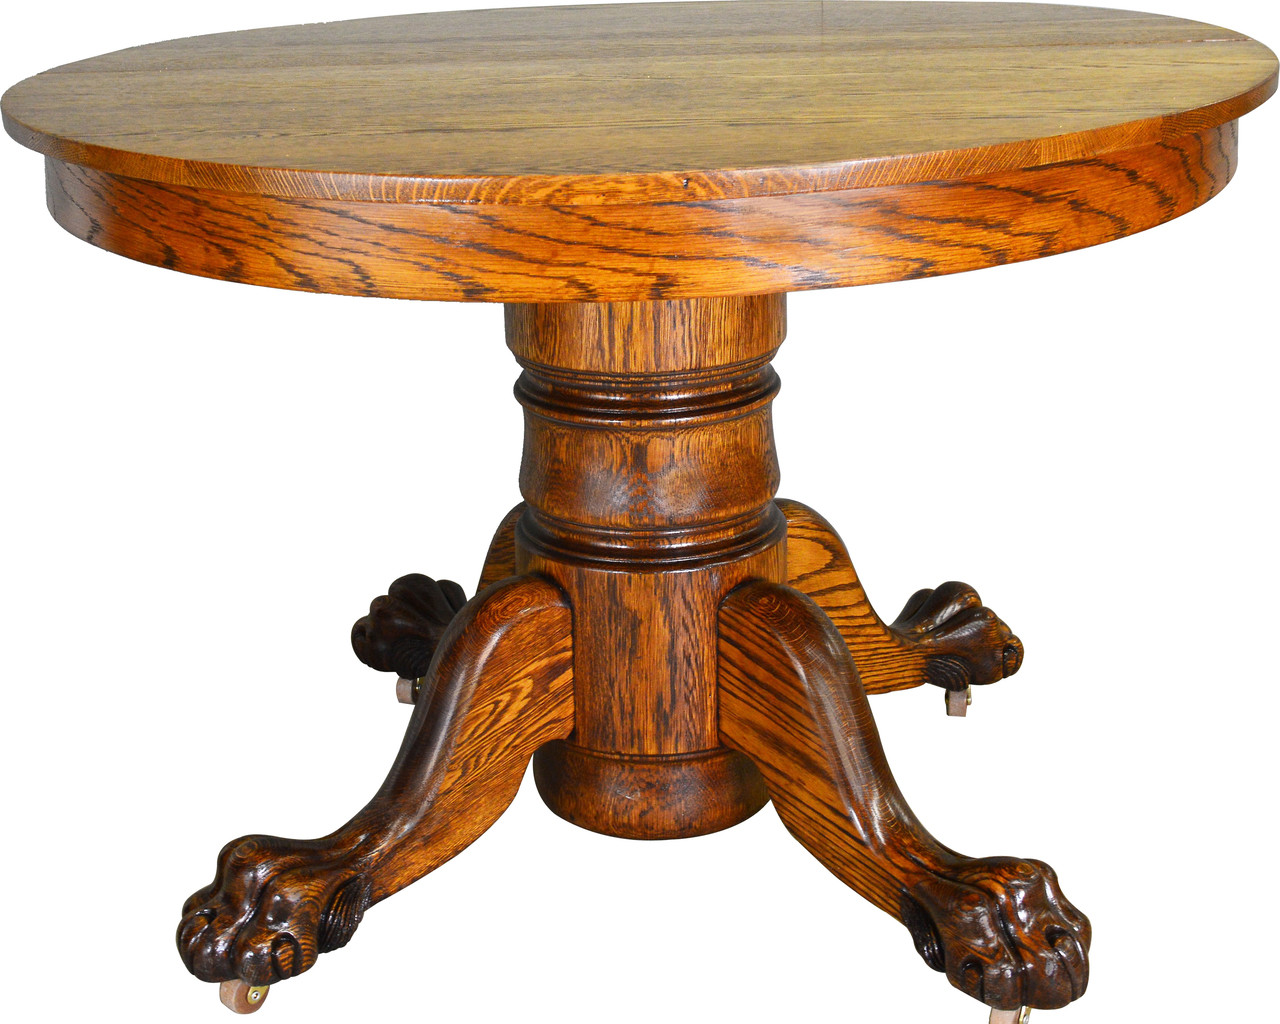 Sold Antique Claw Foot Round Oak Dining Table Maine Antique Furniture